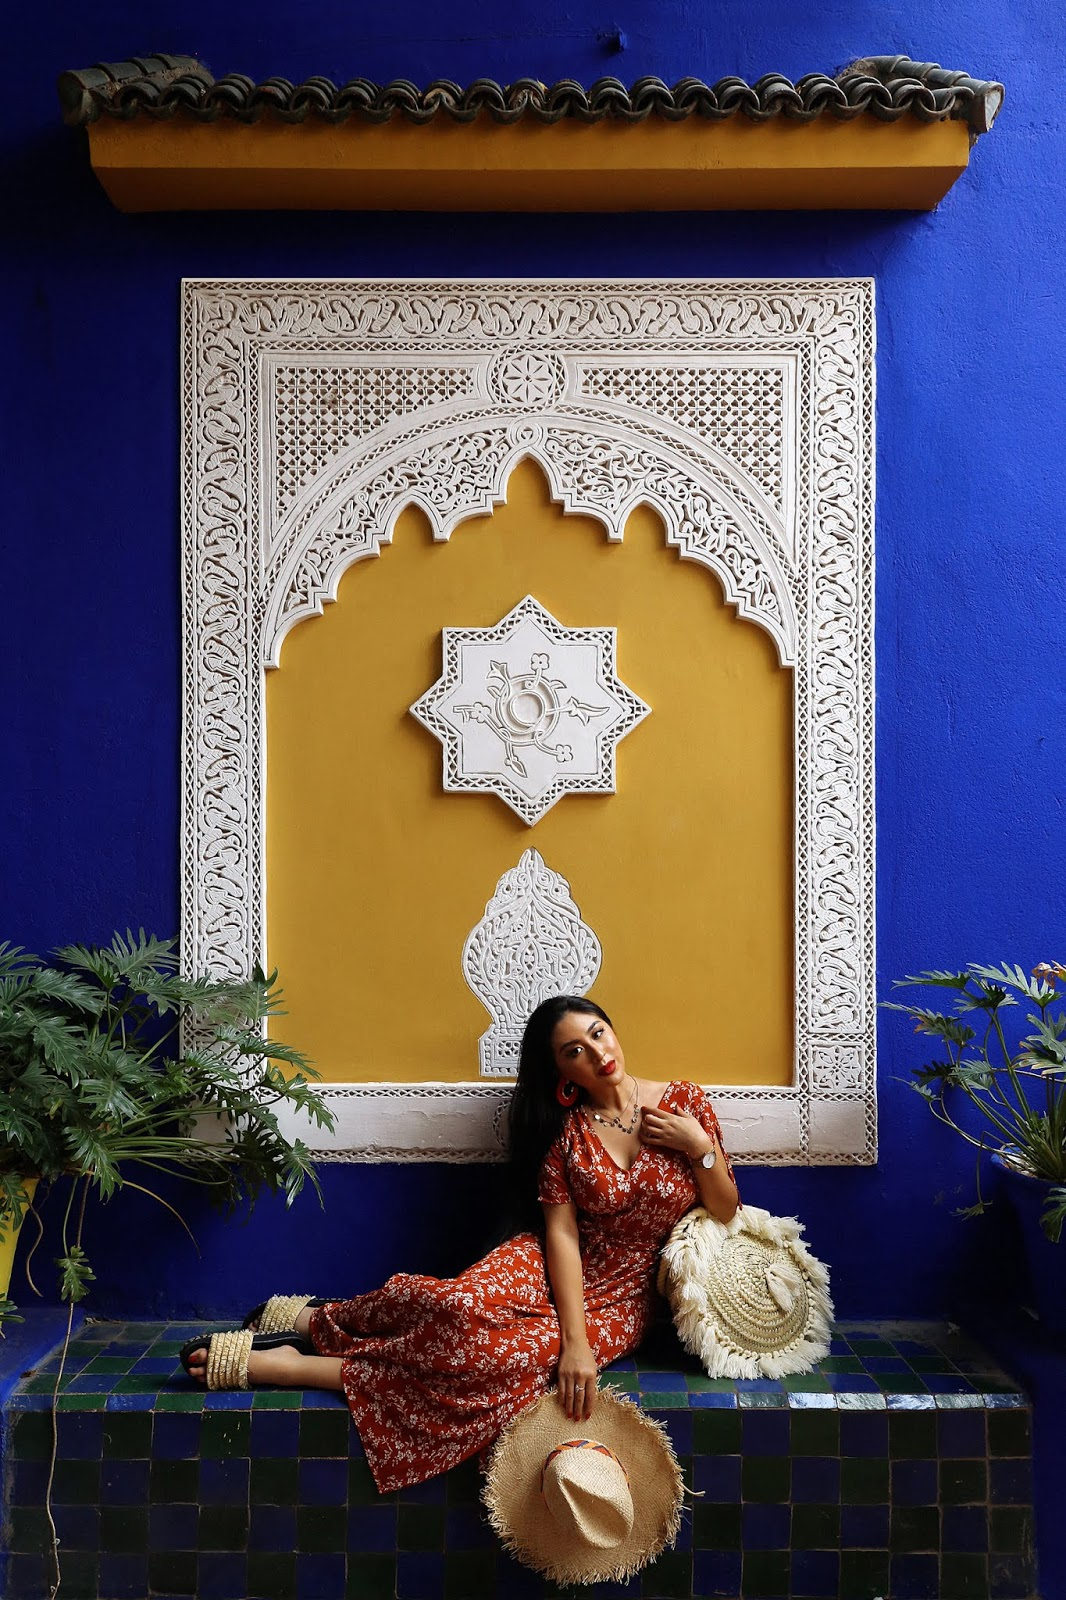 The Morocco Diaries, Part 7 of 10: Jardin Majorelle, Marrakech by Posh, Broke, & Bored